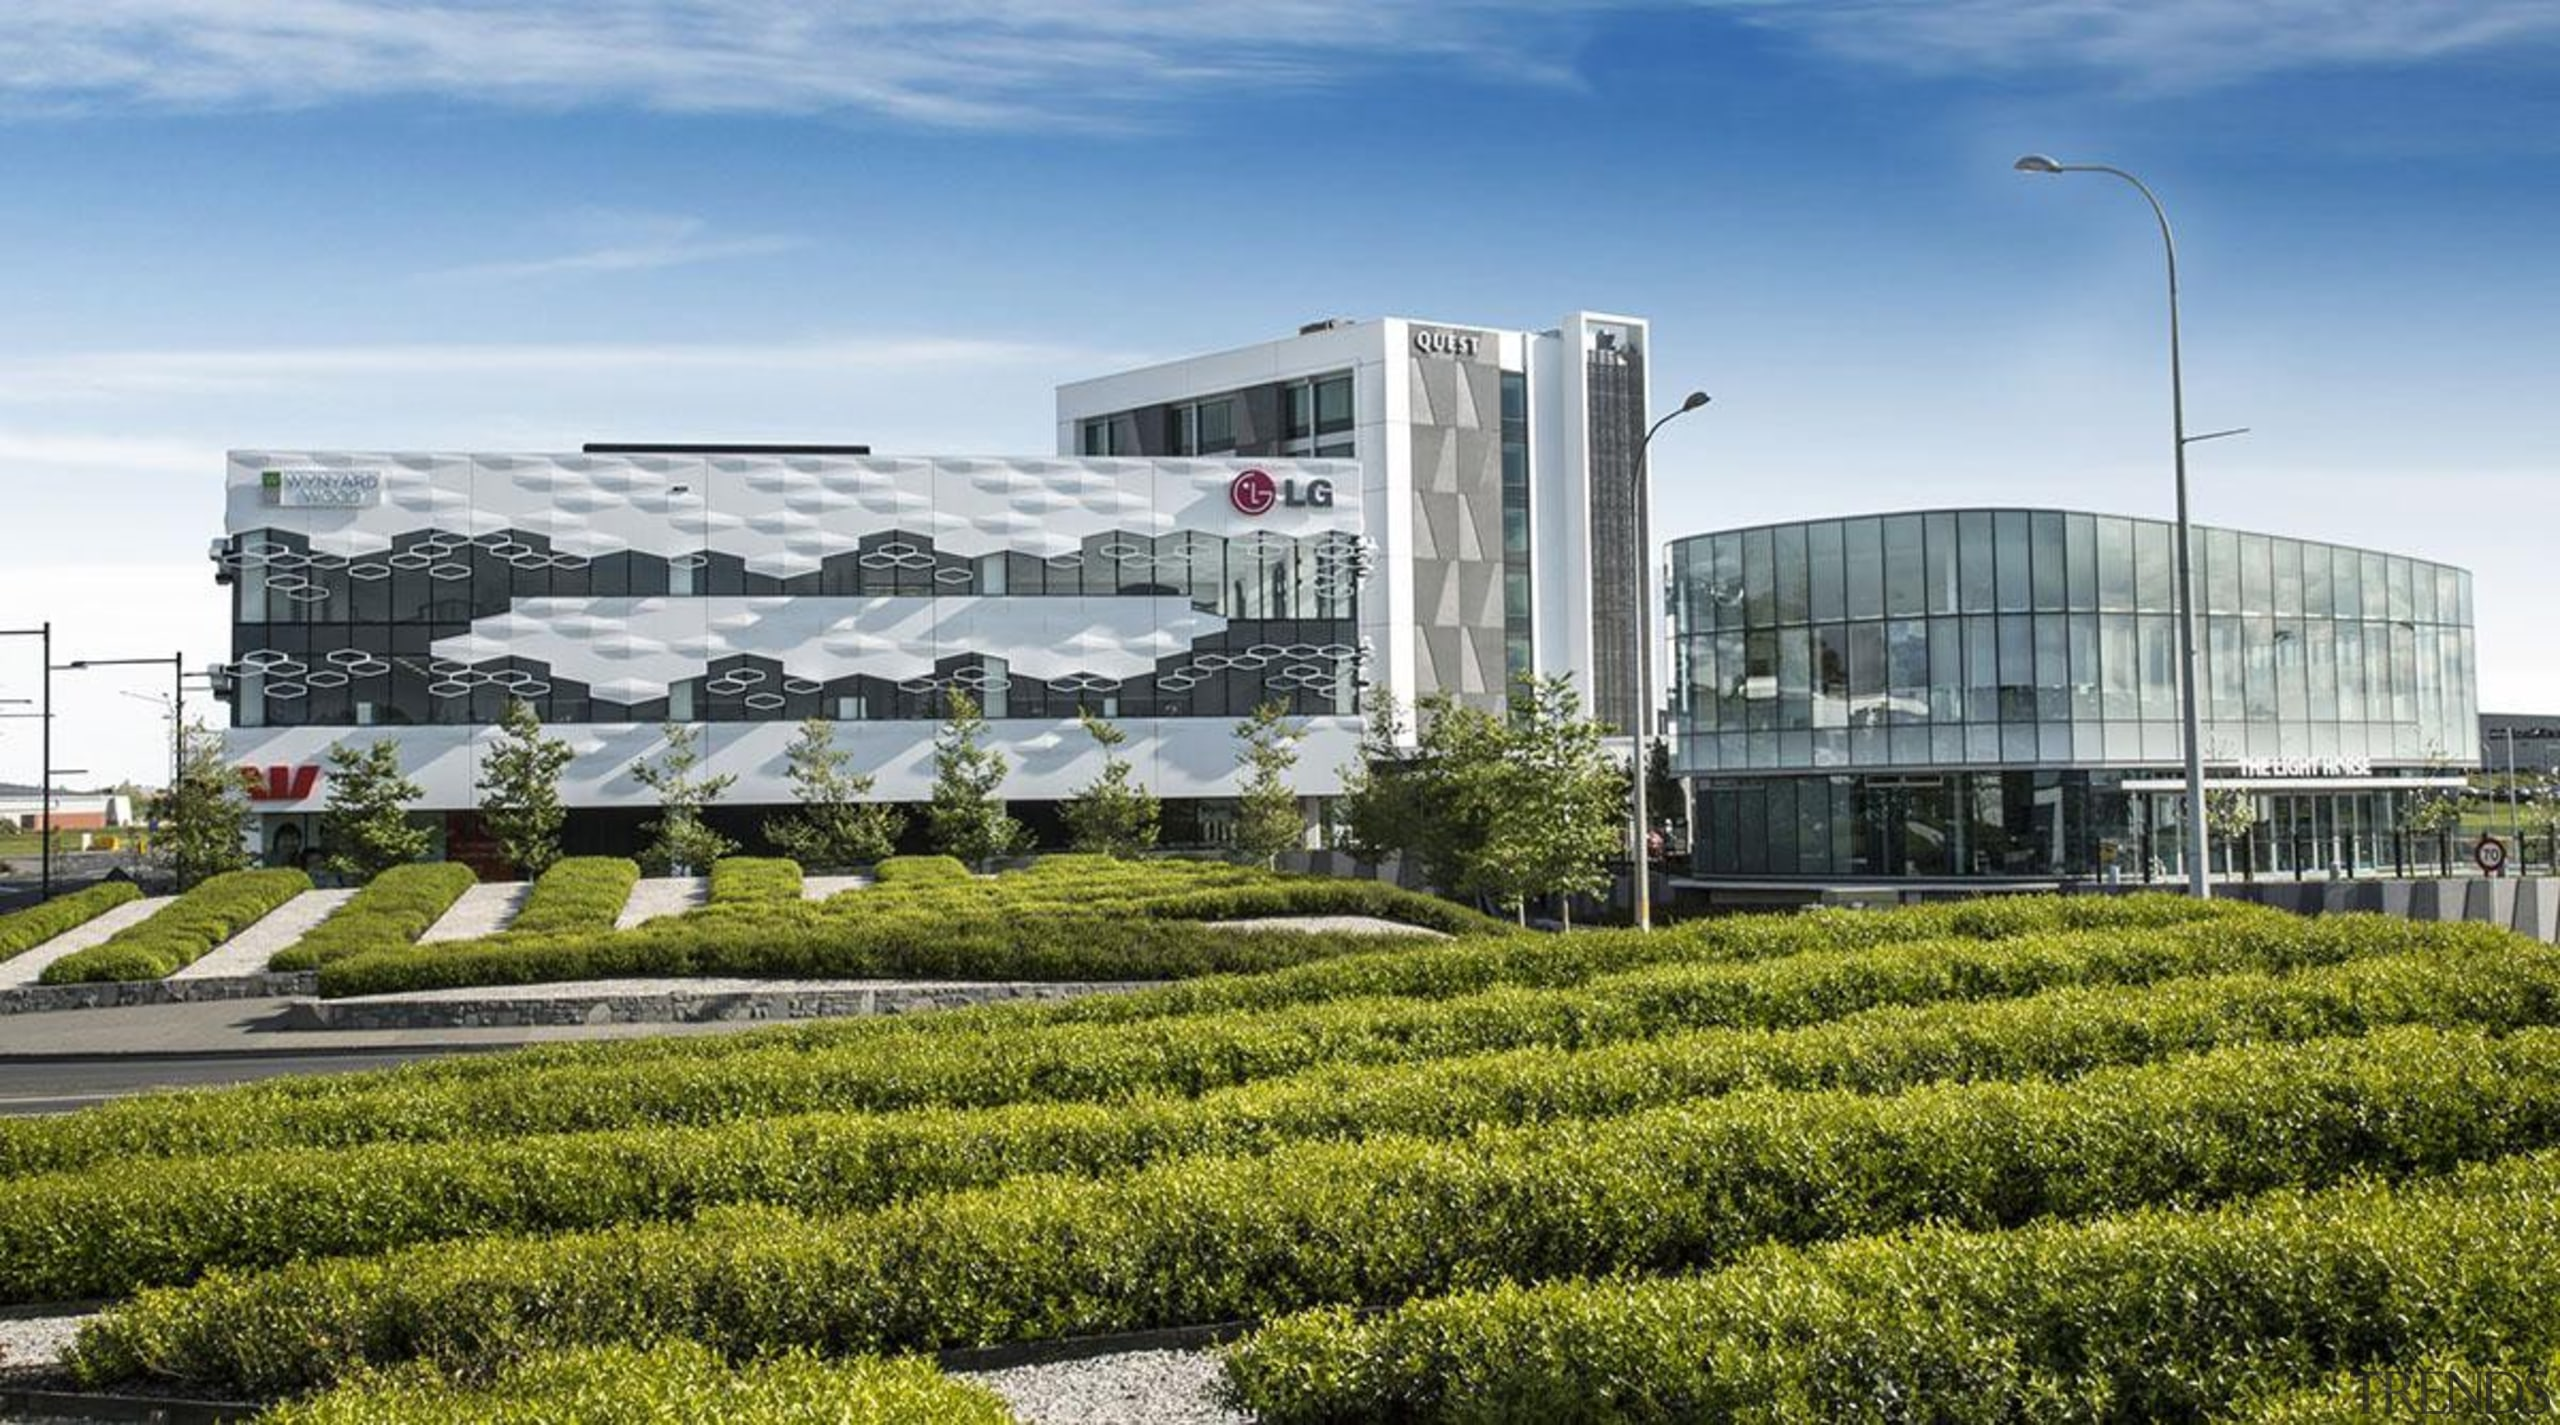 MERIT WINNERThe Crossing Highbrooks Business Park (1 of corporate headquarters, headquarters, mixed use, brown